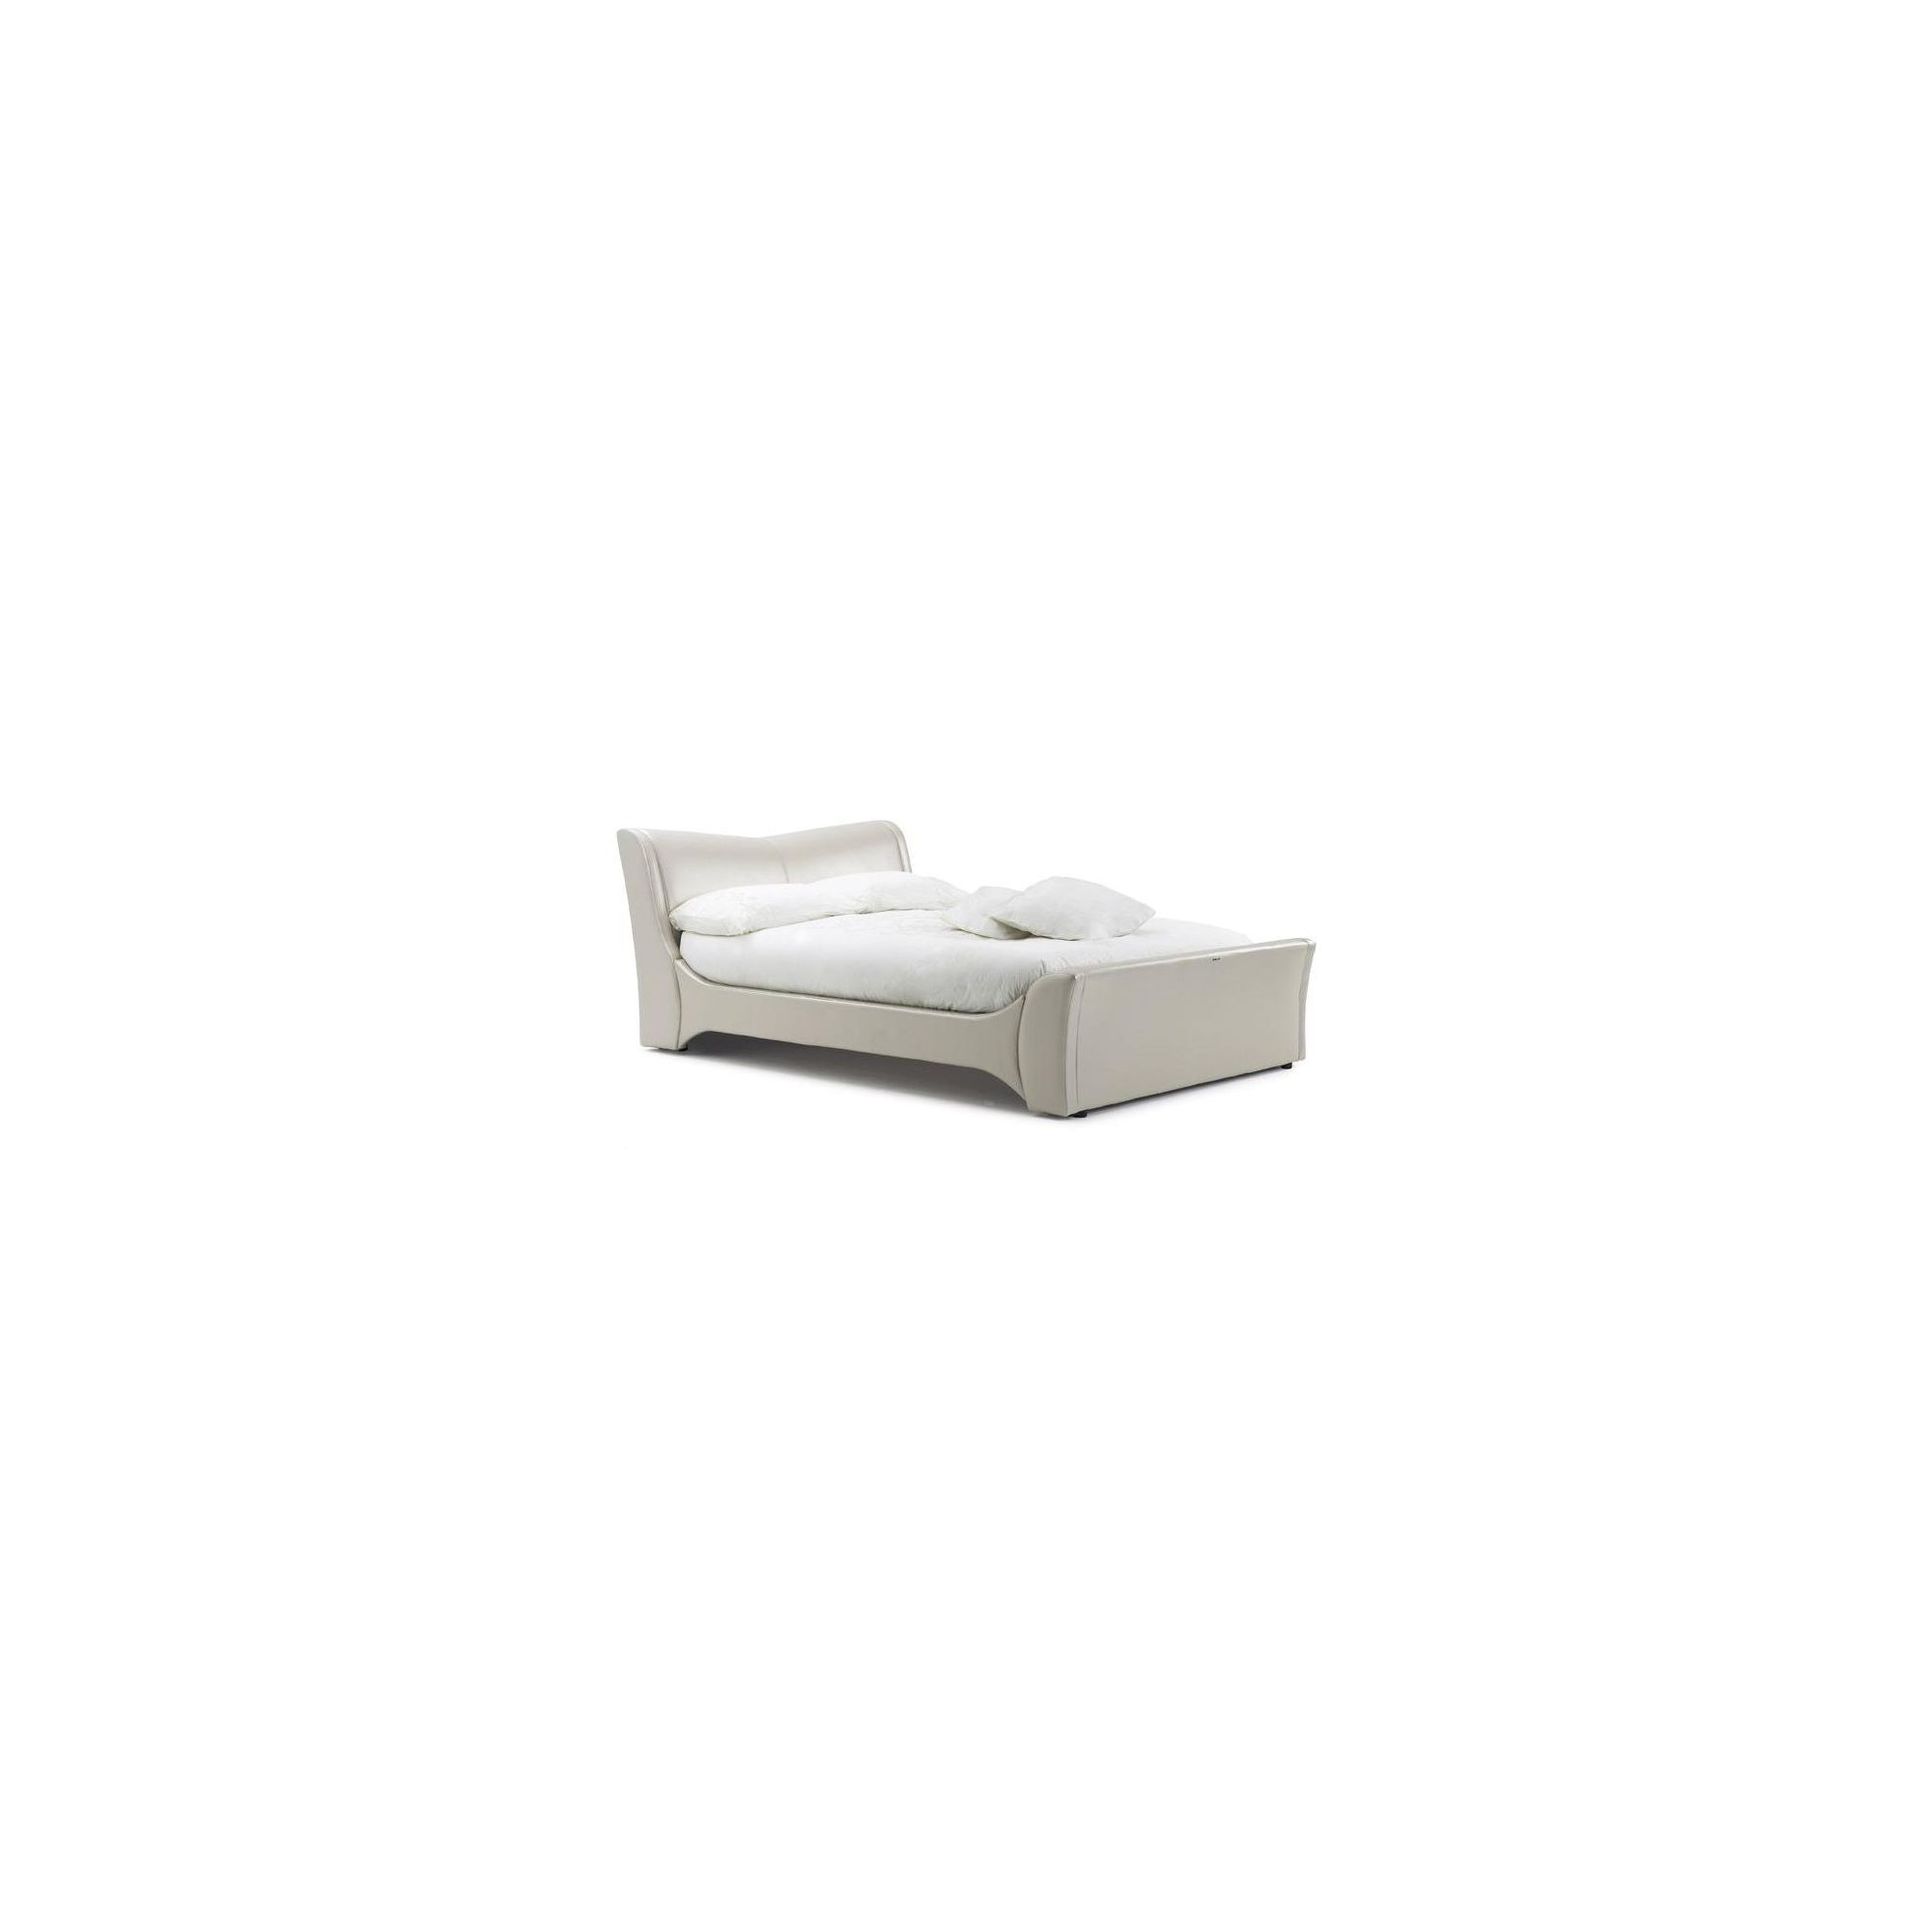 Frank Bosworth Veneto Leather Bed - Double - Pearl at Tescos Direct